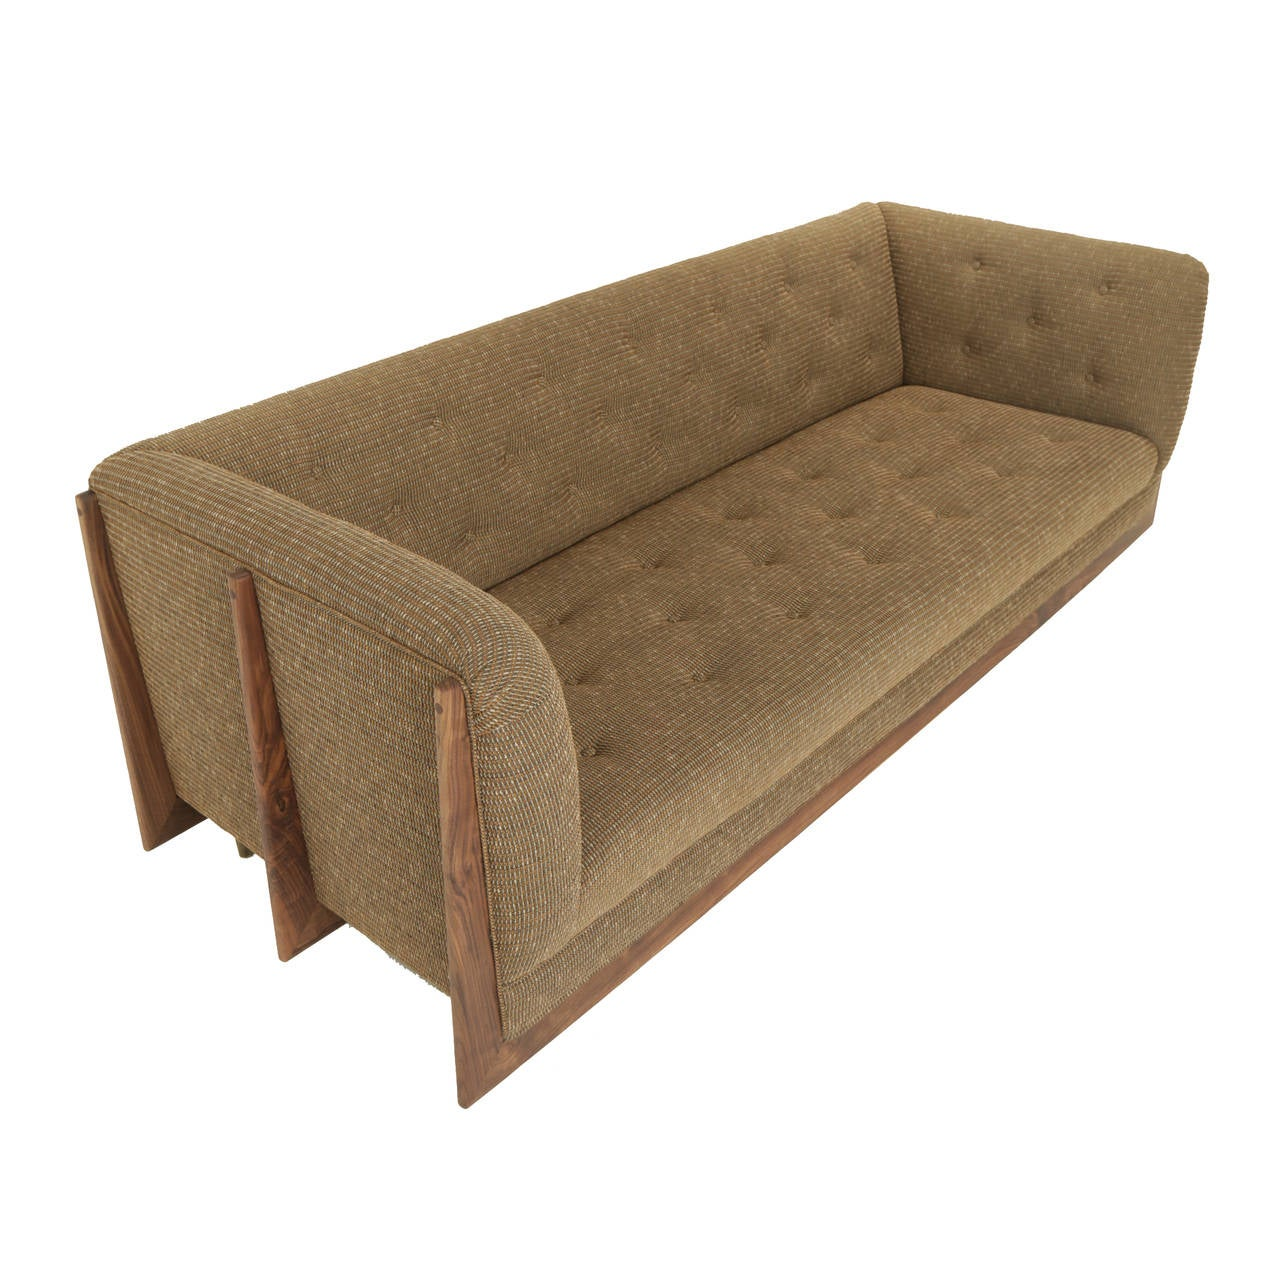 A custom sofa with three extruded solid wood spines that support the case on either end on top of cylindrical solid bronze feet. The upholstery is tufted but can also be done with loose cushions.   This exact sofa is available immediately, but it